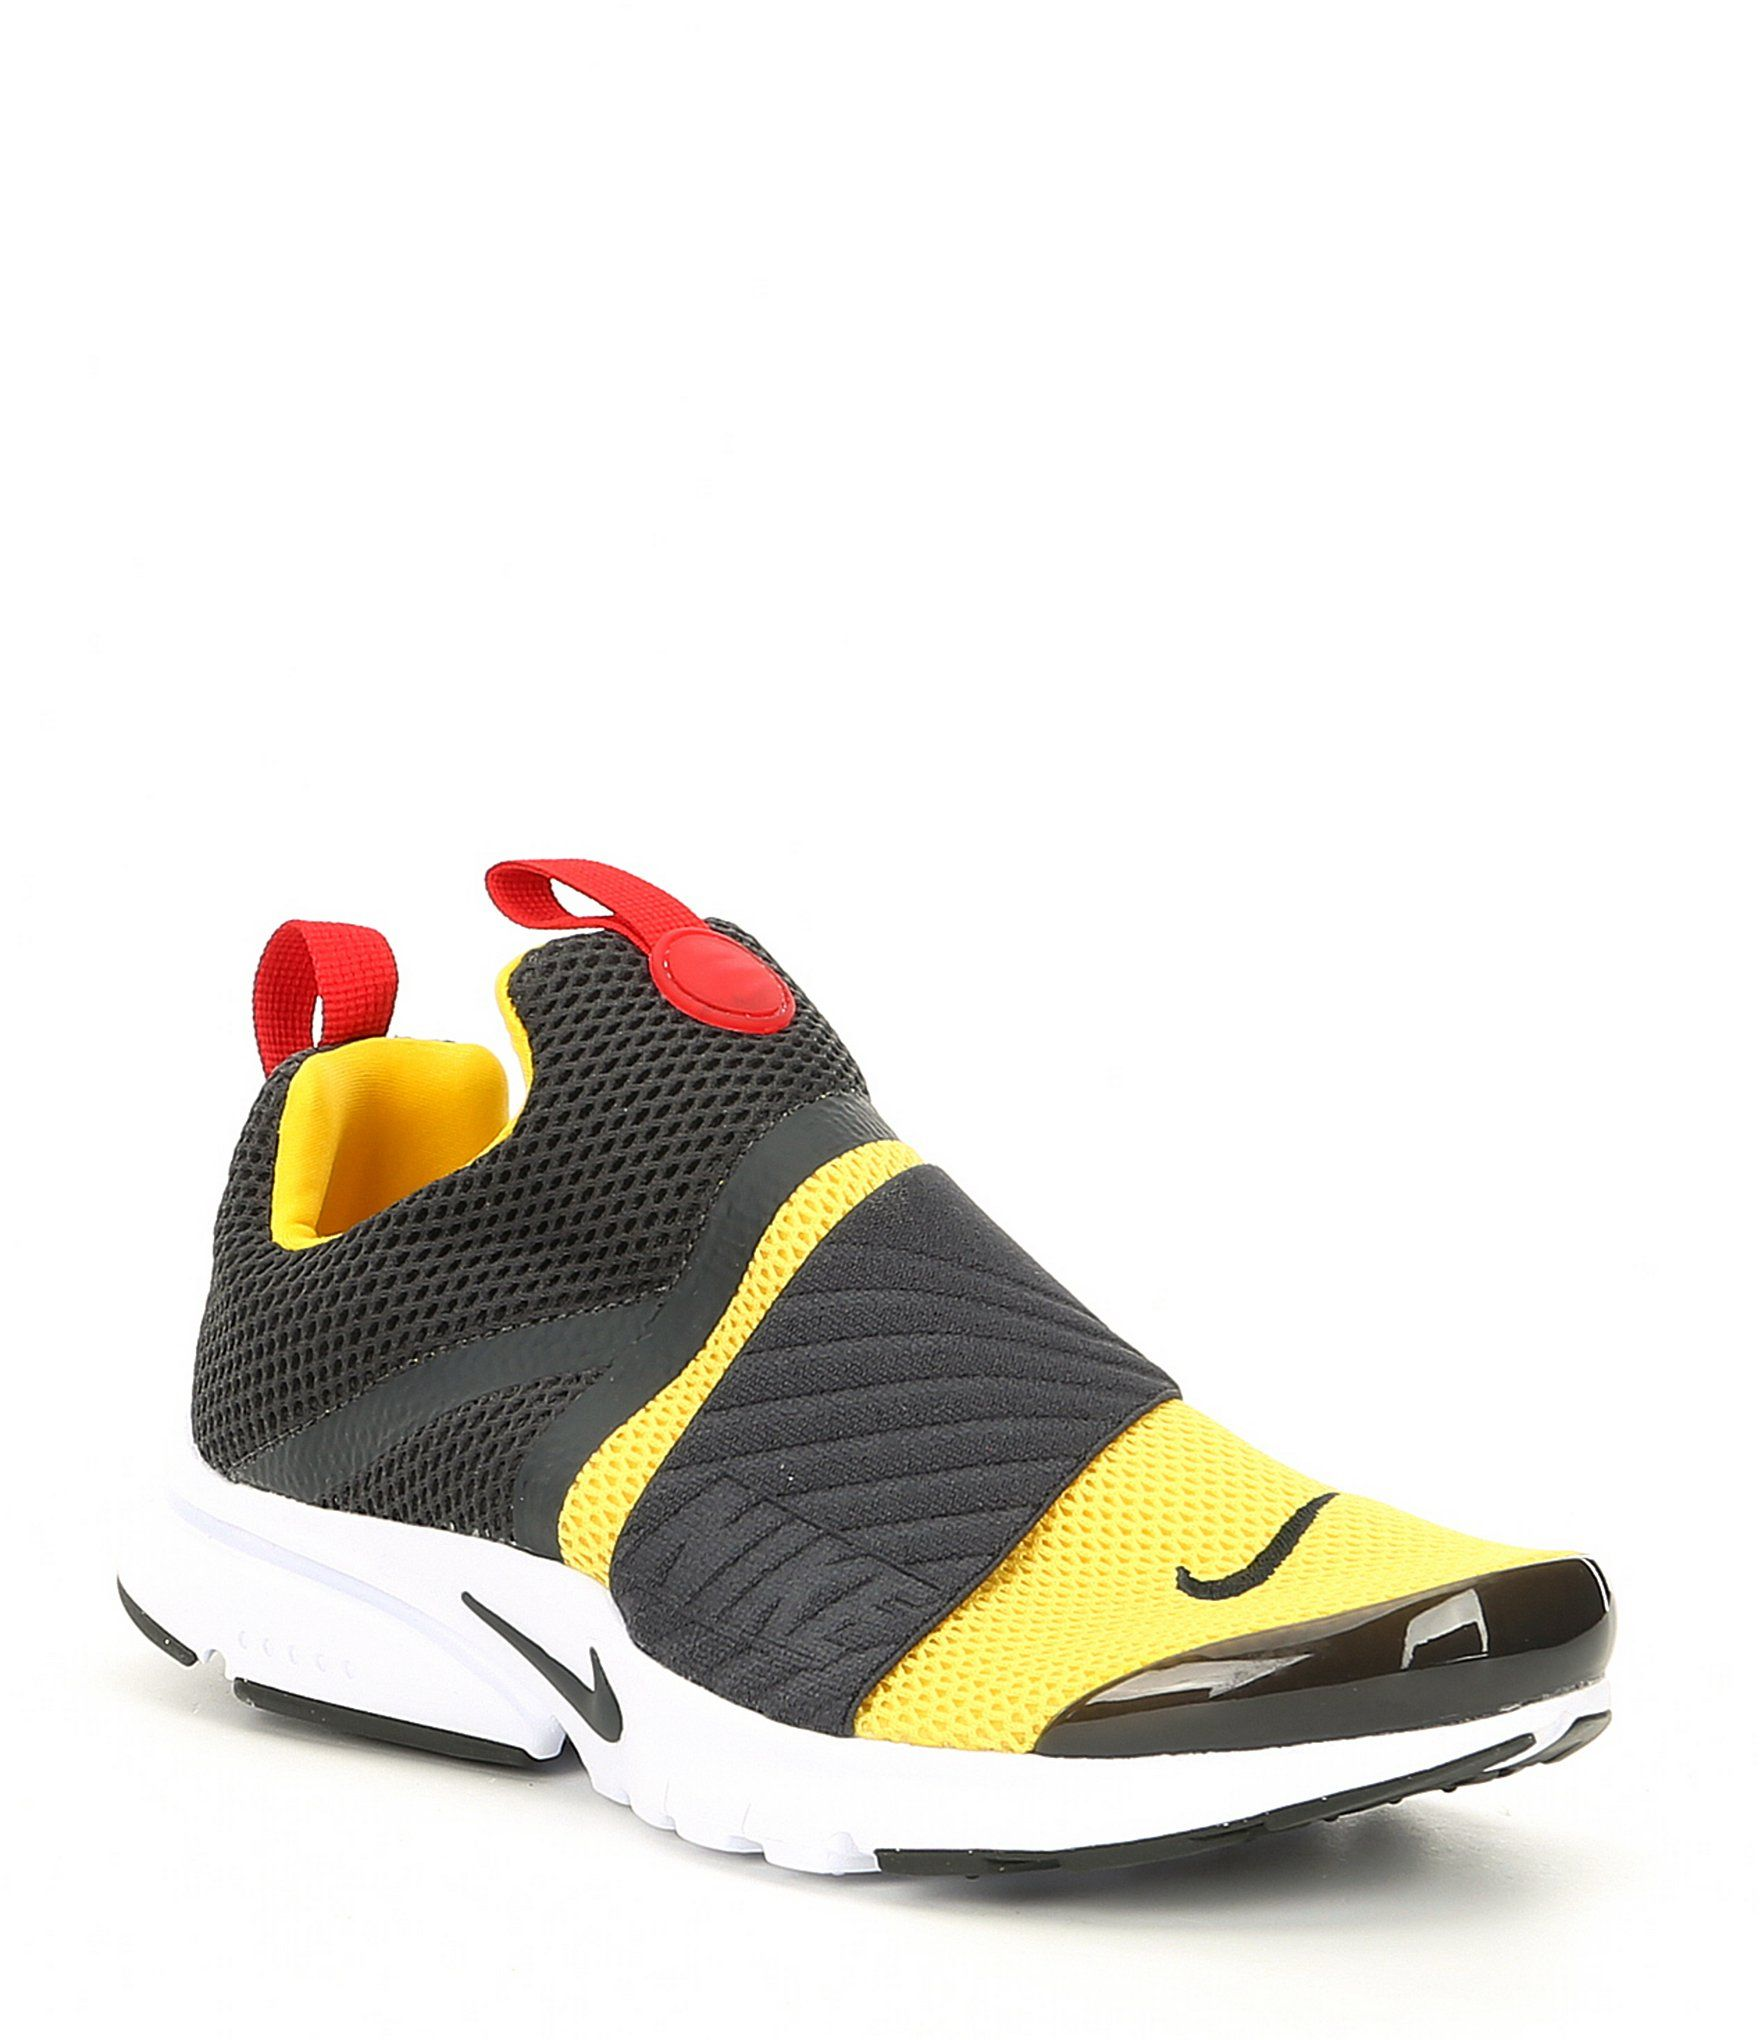 half off 84a5f b2cb8 Shop for Nike Boys  Presto Extreme Slip On Sneakers at Dillards.com. Visit  Dillards.com to find clothing, accessories, shoes, cosmetics   more.